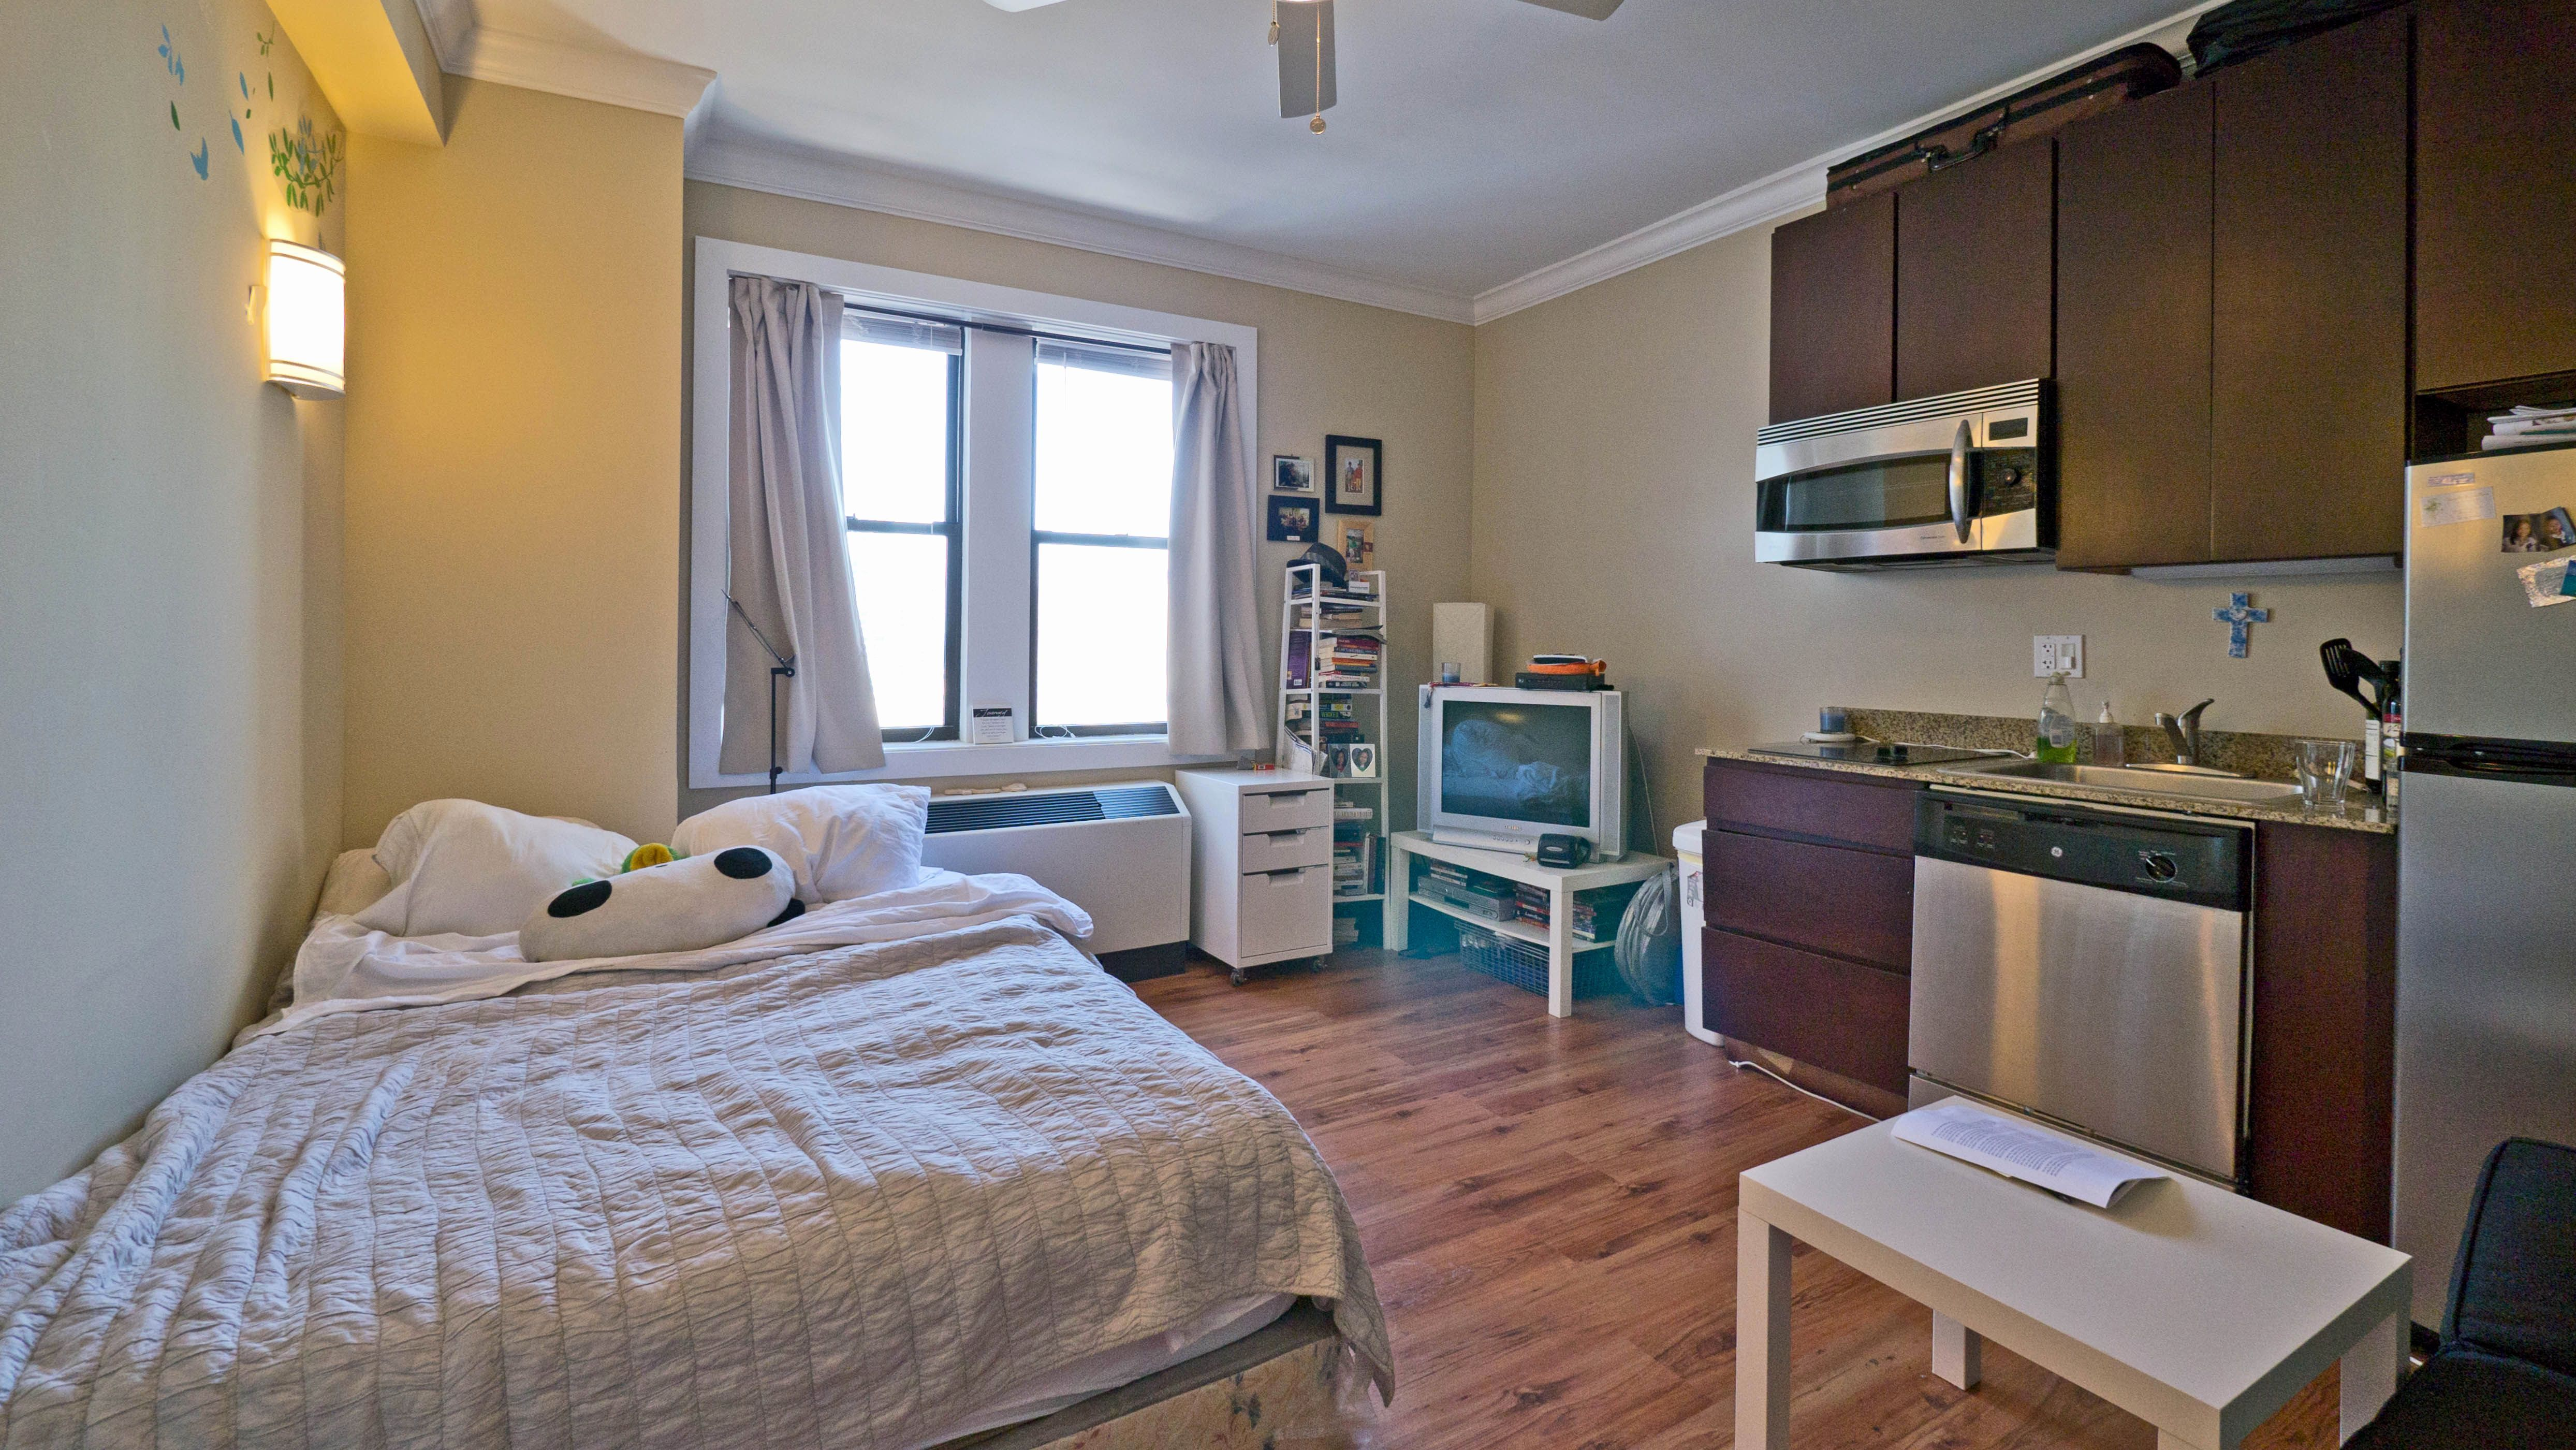 Pin By Union Complex On Union Complex In 2021 Renting A House One Bedroom Apartment Bedroom Apartment